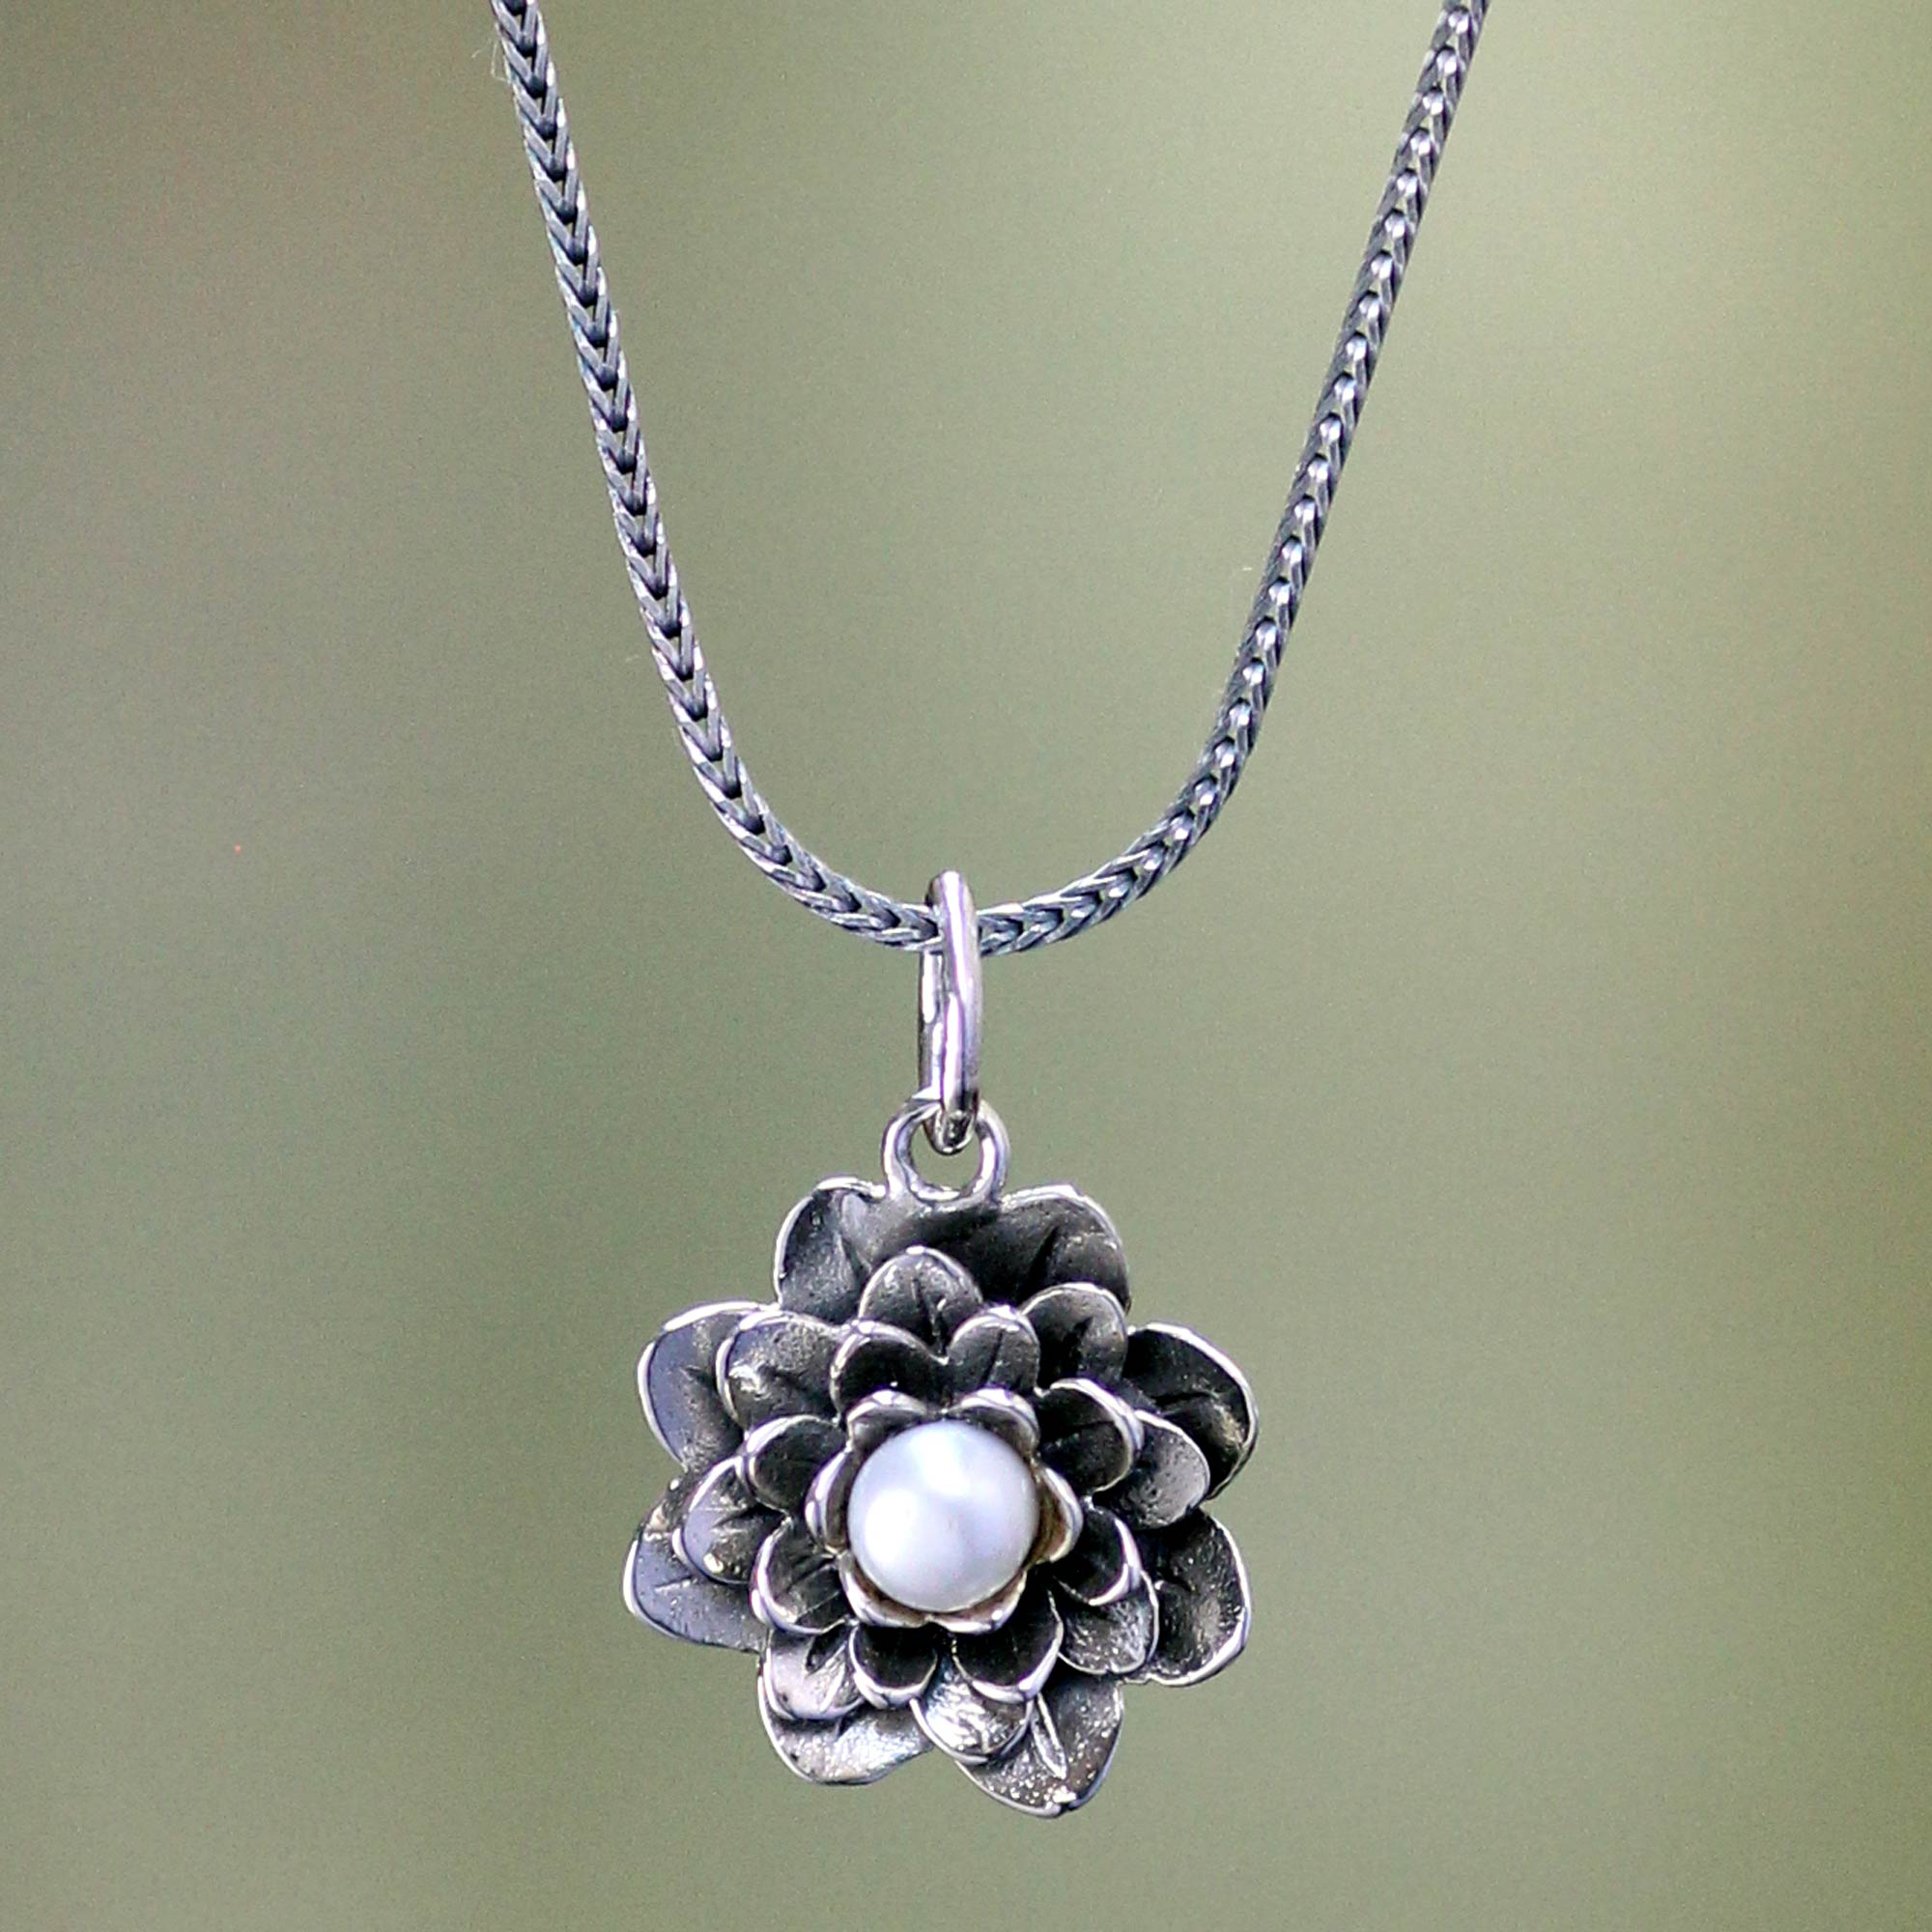 out cut necklace srn sterling bling pendant lotus silver flower jewelry blossom